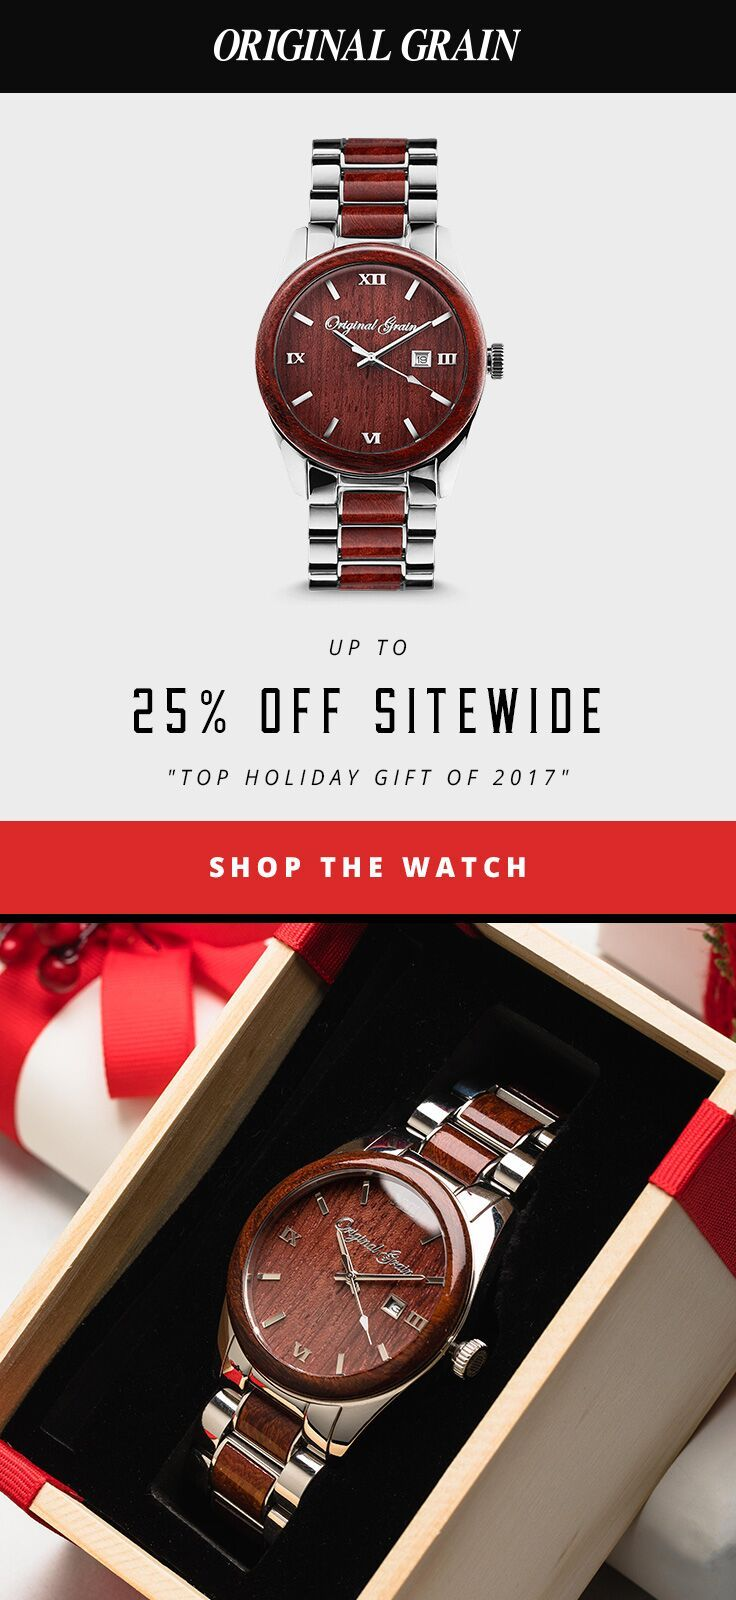 Shop our Holiday sale for 25% off sitewide. Original Grain handcrafted wood & steel watches make the perfect holiday gift. Ends December 18.